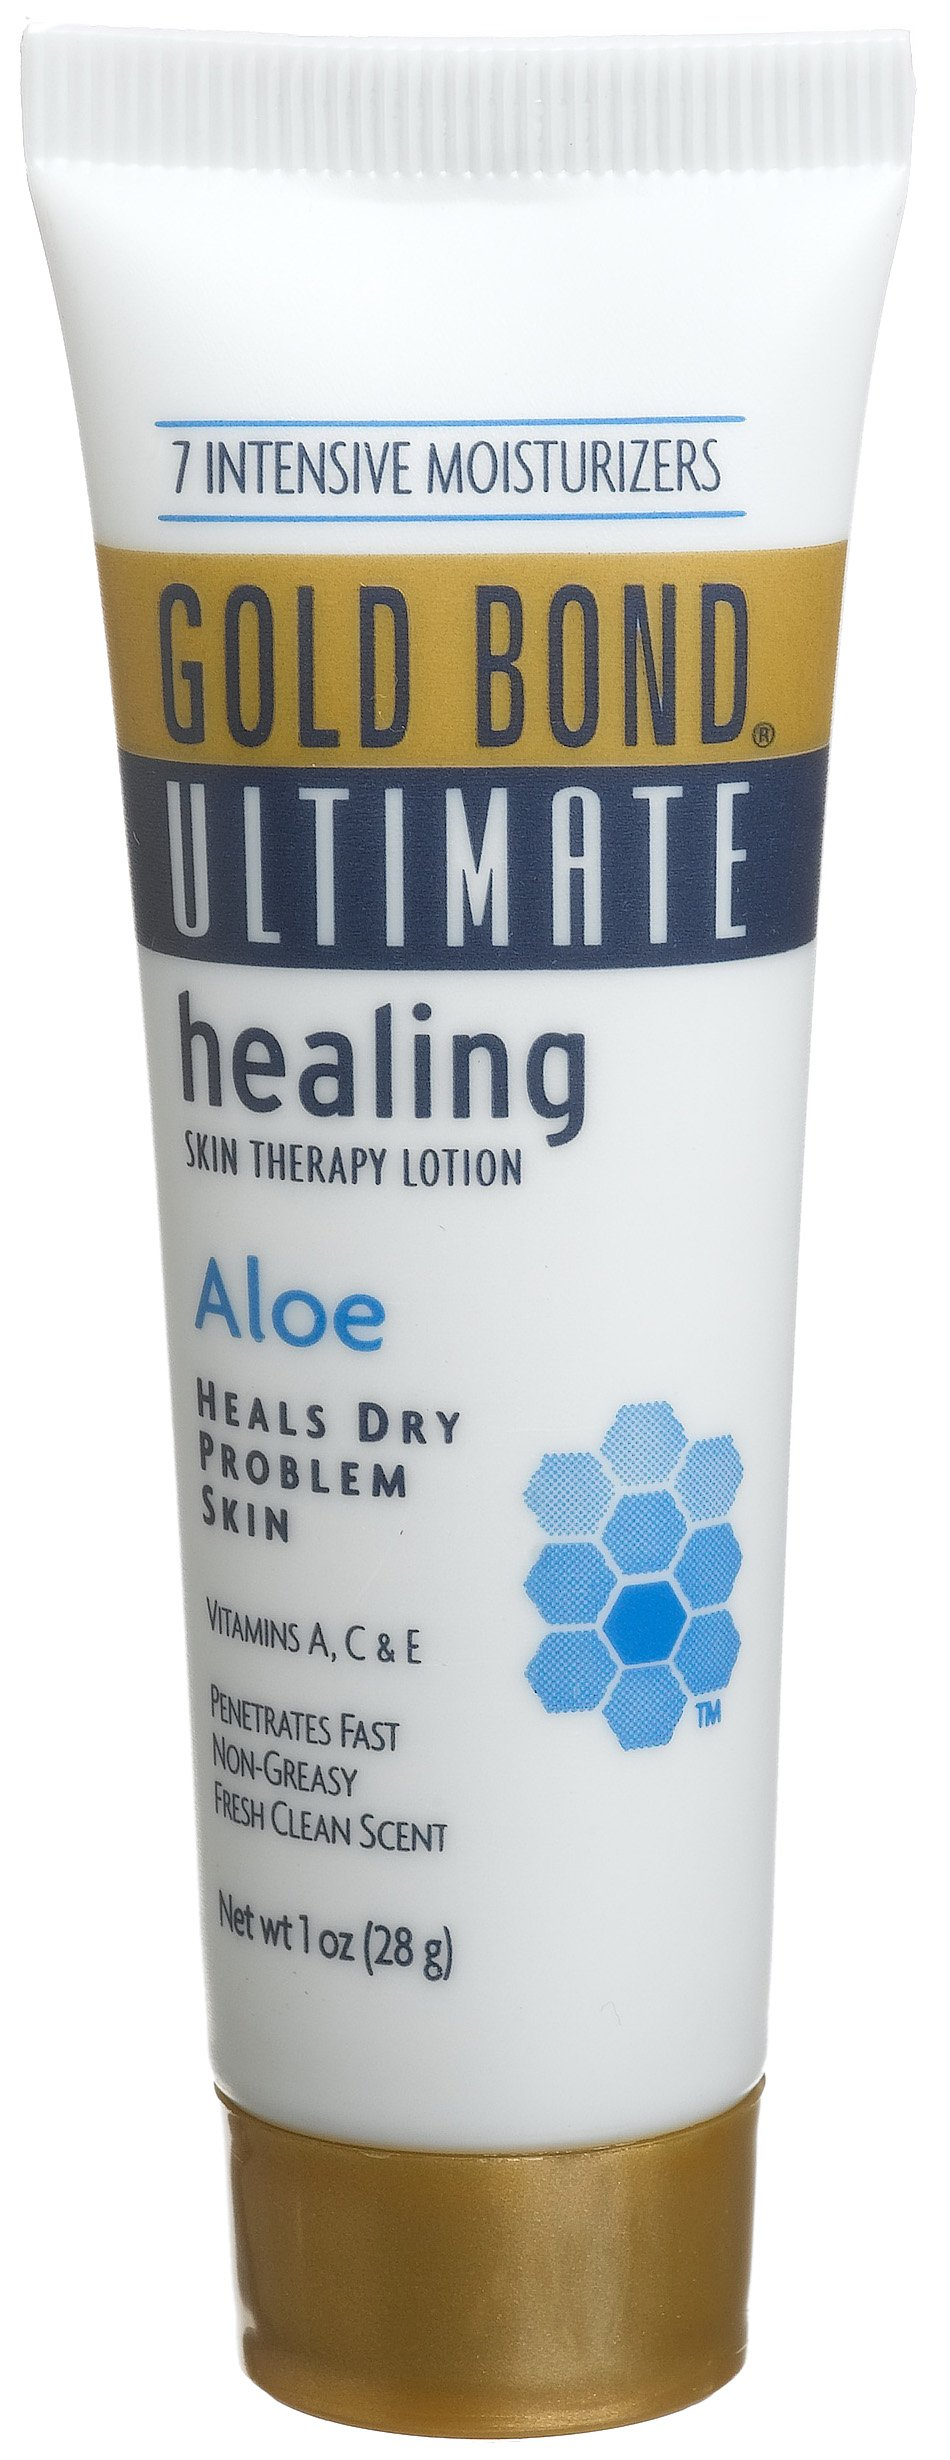 Gold Bond Ultimate Healing Skin Therapy Lotion, 1 Ounce